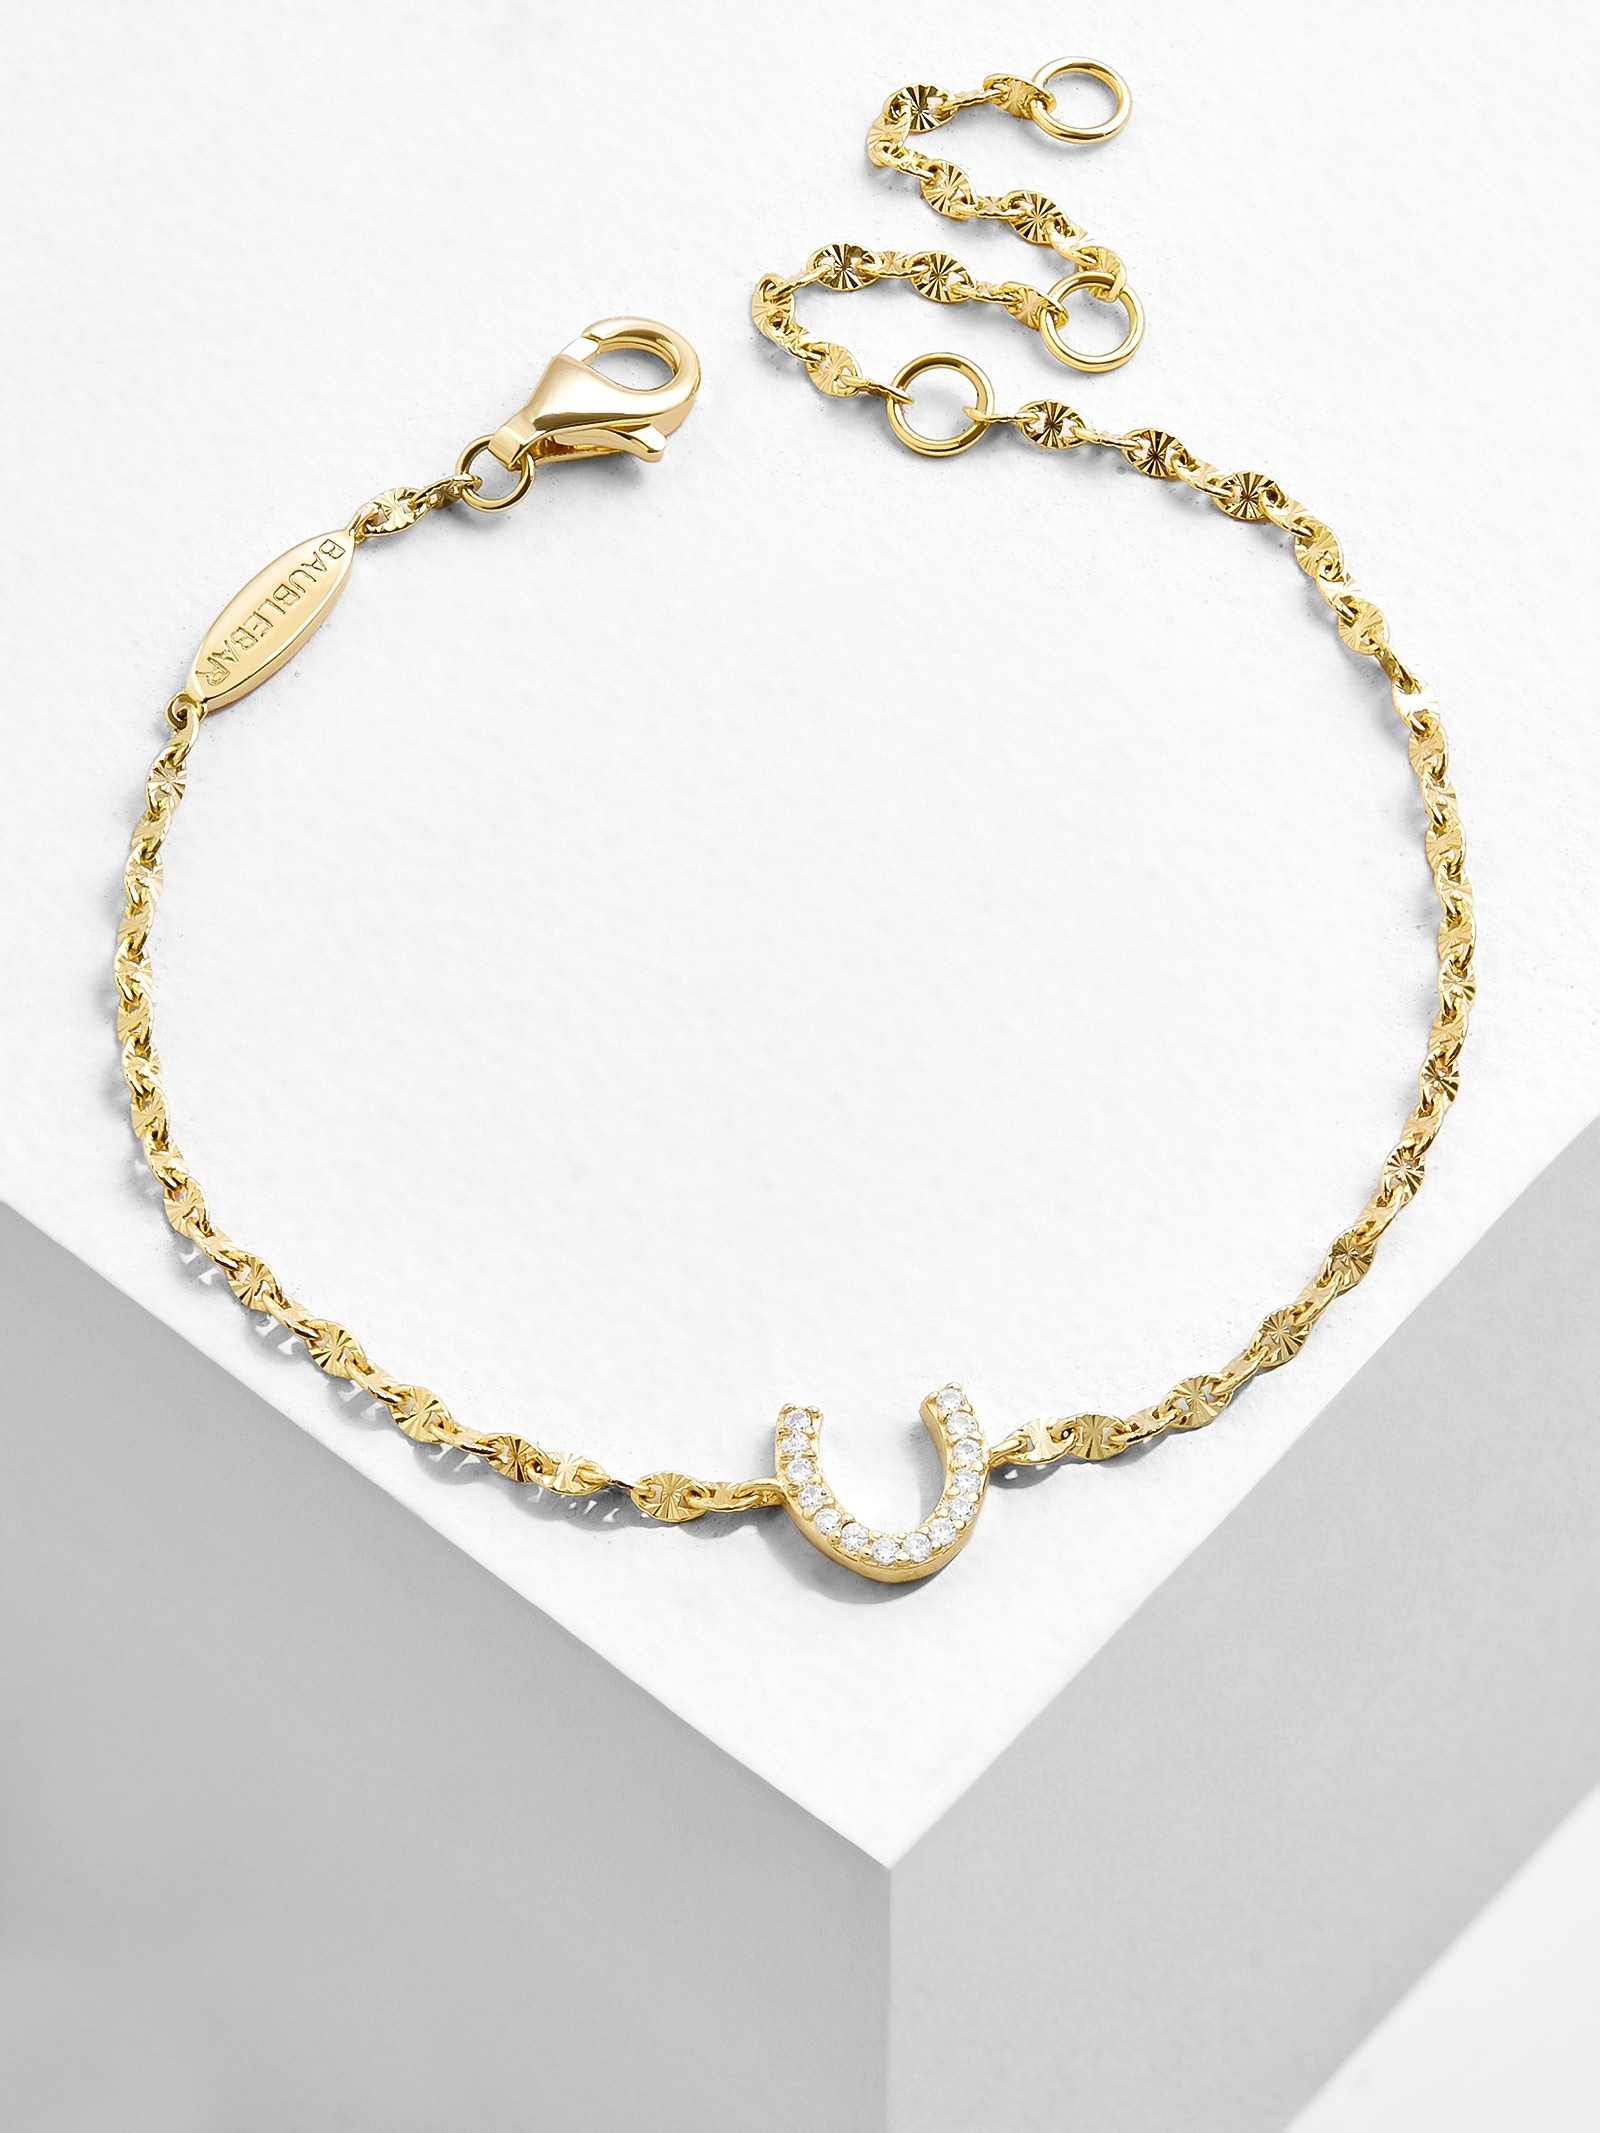 Fortuna 18 K Gold Plated Bracelet by Baublebar